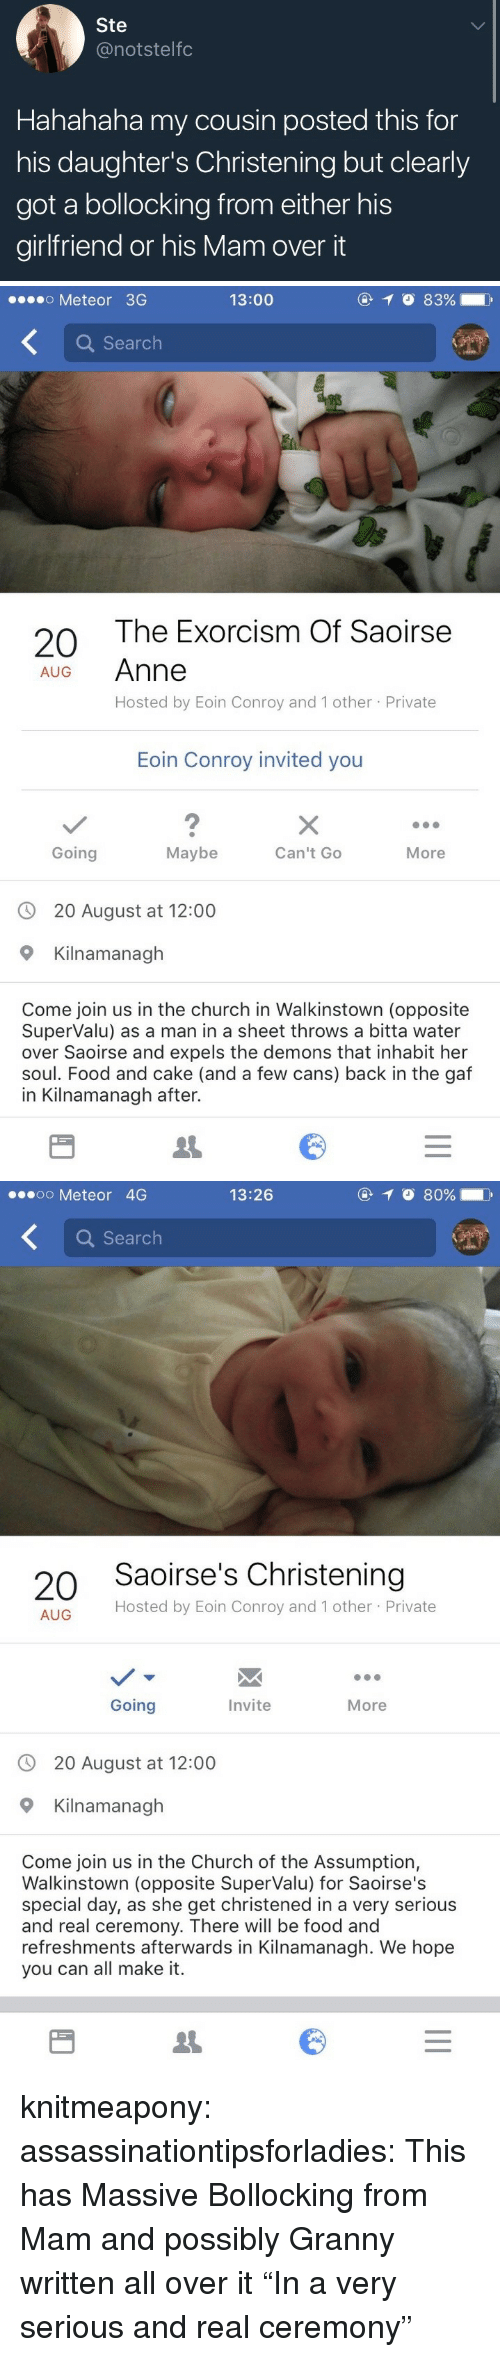 """Church, Food, and Tumblr: Ste  @notstelfc  Hahahaha my cousin posted this for  his daughter's Christening but clearly  got a bollocking from either his  girlfriend or his Mam over it   .o Meteor 3G  13:00  a Search  The Exorcism Of Saoirse  Anne  Hosted by Eoin Conroy and 1 other Private  20  AUG  Eoin Conroy invited you  2  Going  Maybe  Can't Go  More  20 August at 12:00  Kilnamanagh  Come join us in the church in Walkinstown (opposite  SuperValu) as a man in a sheet throws a bitta water  over Saoirse and expels the demons that inhabit her  soul. Food and cake (and a few cans) back in the gaf  in Kilnamanagh after.   oo Meteor 4G  13:26  Q Search  20 Saoirse's Christening  Hosted by Eoin Conroy and 1 other Private  AUG  Going  Invite  More  20 August at 12:00  9 Kilnamanagh  Come join us in the Church of the Assumption,  Walkinstown (opposite SuperValu) for Saoirse's  special day, as she get christened in a very serious  and real ceremony. There will be food and  refreshments afterwards in Kilnamanagh. We hope  you can all make it. knitmeapony: assassinationtipsforladies: This has Massive Bollocking from Mam and possibly Granny written all over it """"In a very serious and real ceremony"""""""